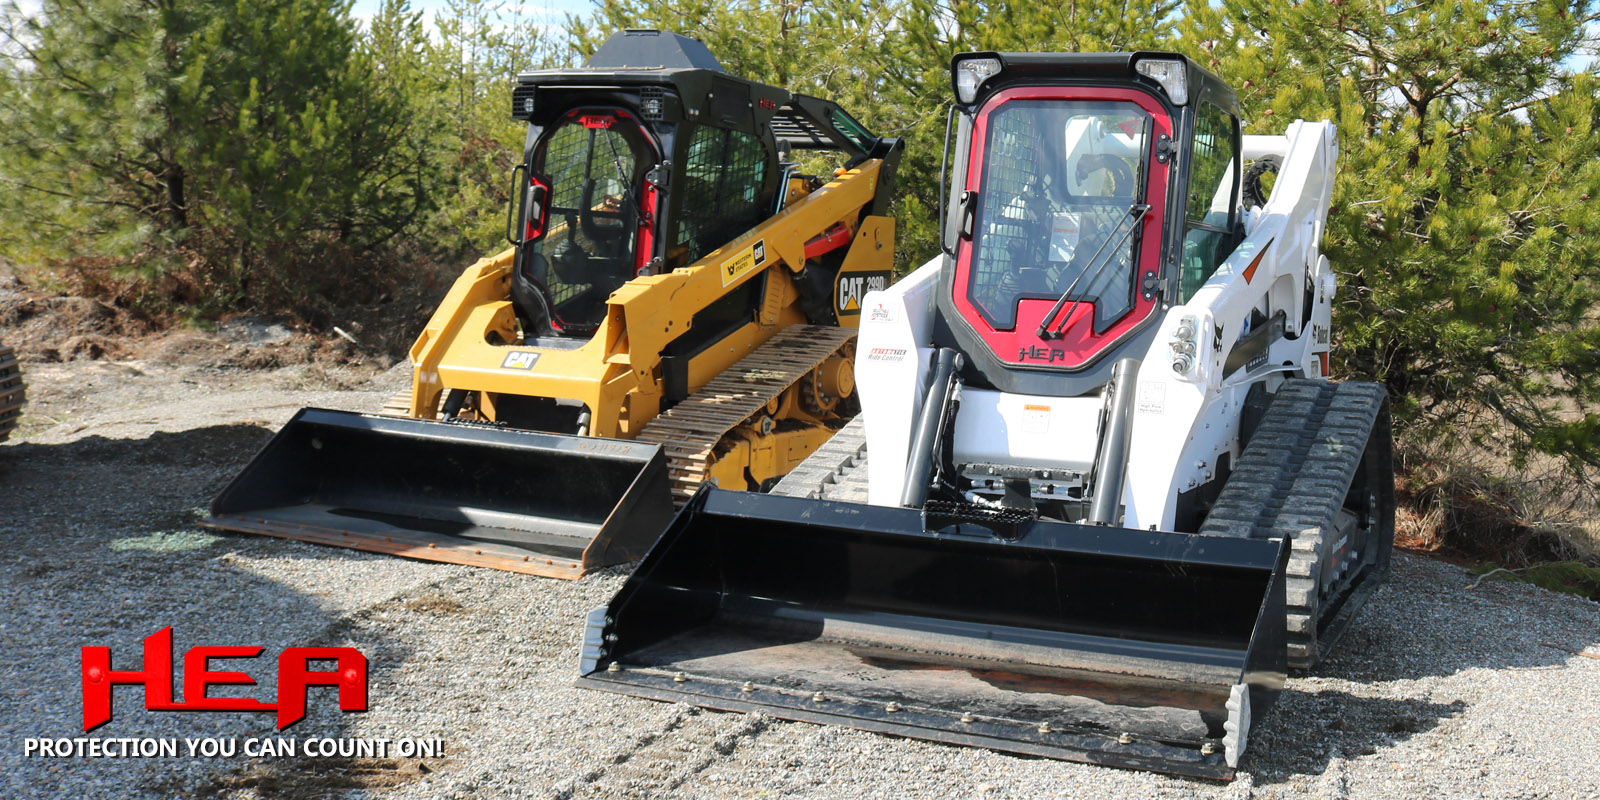 Cab Guards for Excavators - Skid Steer Armor -